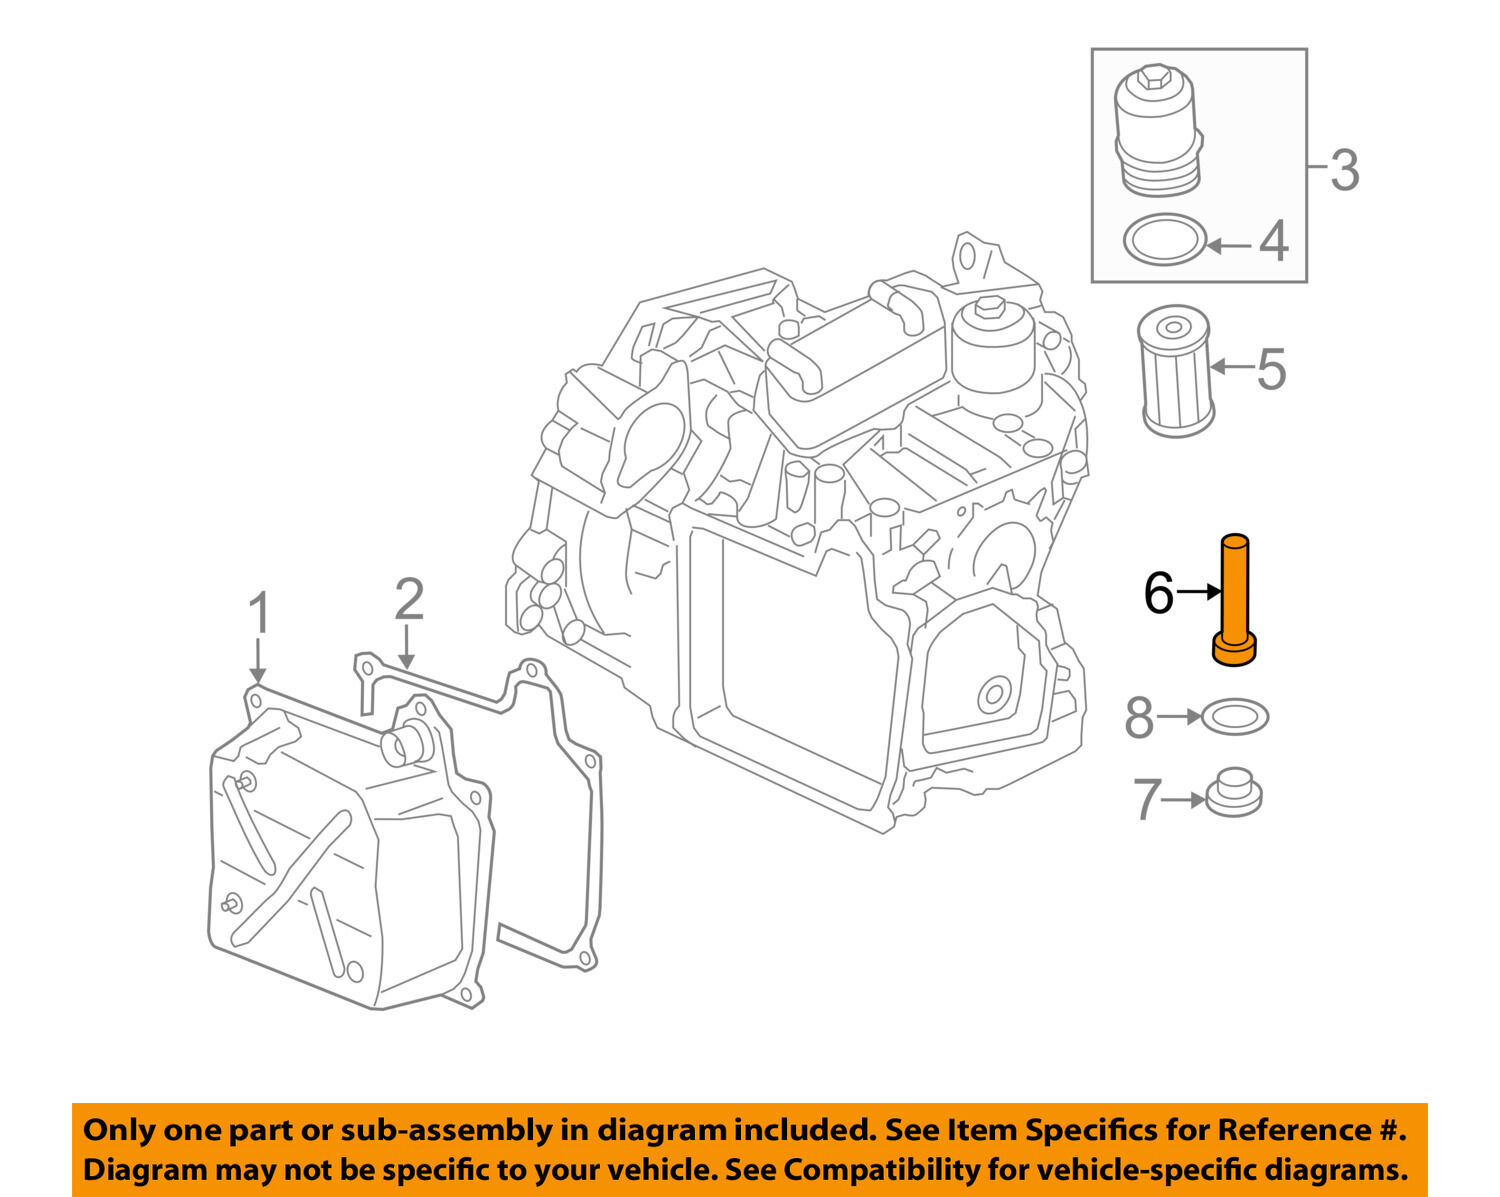 2001 jetta vr6 vacuum diagram wiring for les paul style guitar vw parts engine auto catalog and